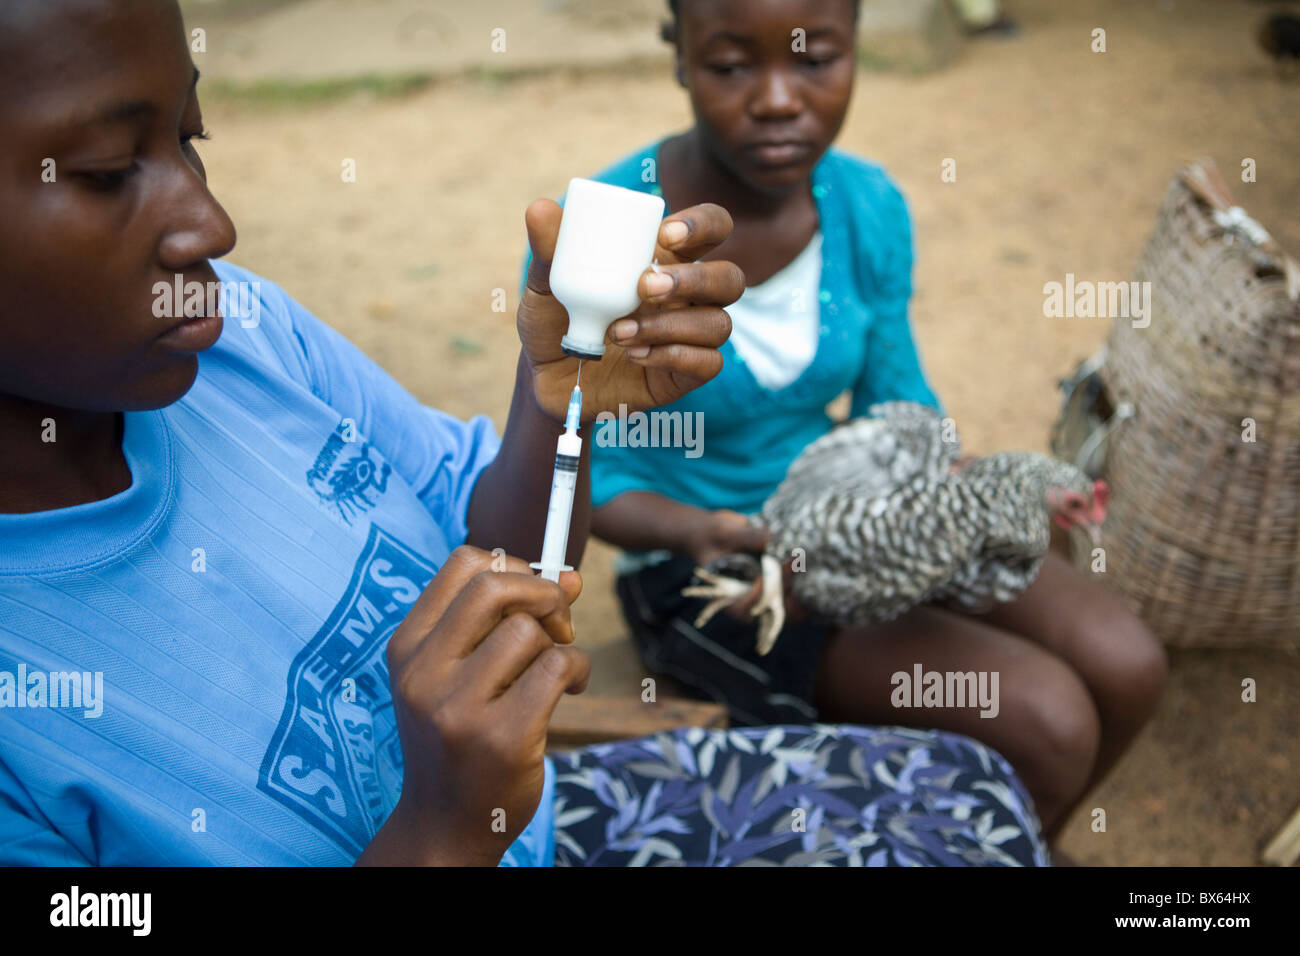 A veterinary worker draws medicine from a bottle in Kakata, Liberia, West Africa. - Stock Image